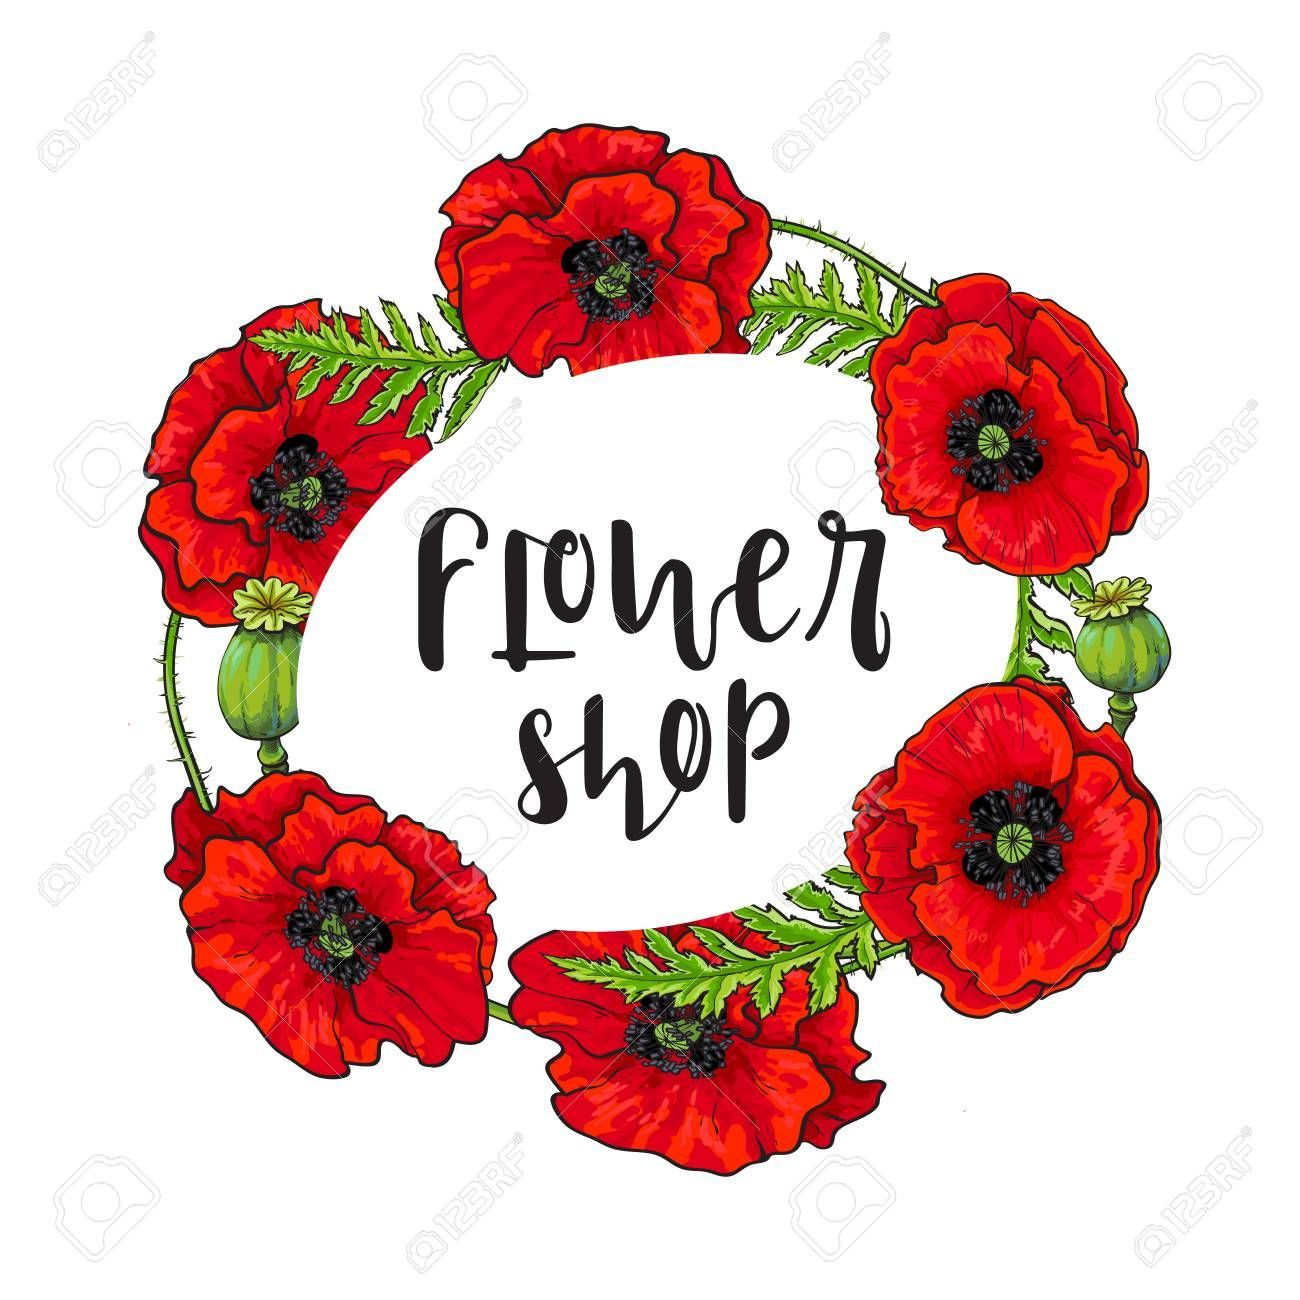 Vector red poppy flower blooming flower shop template